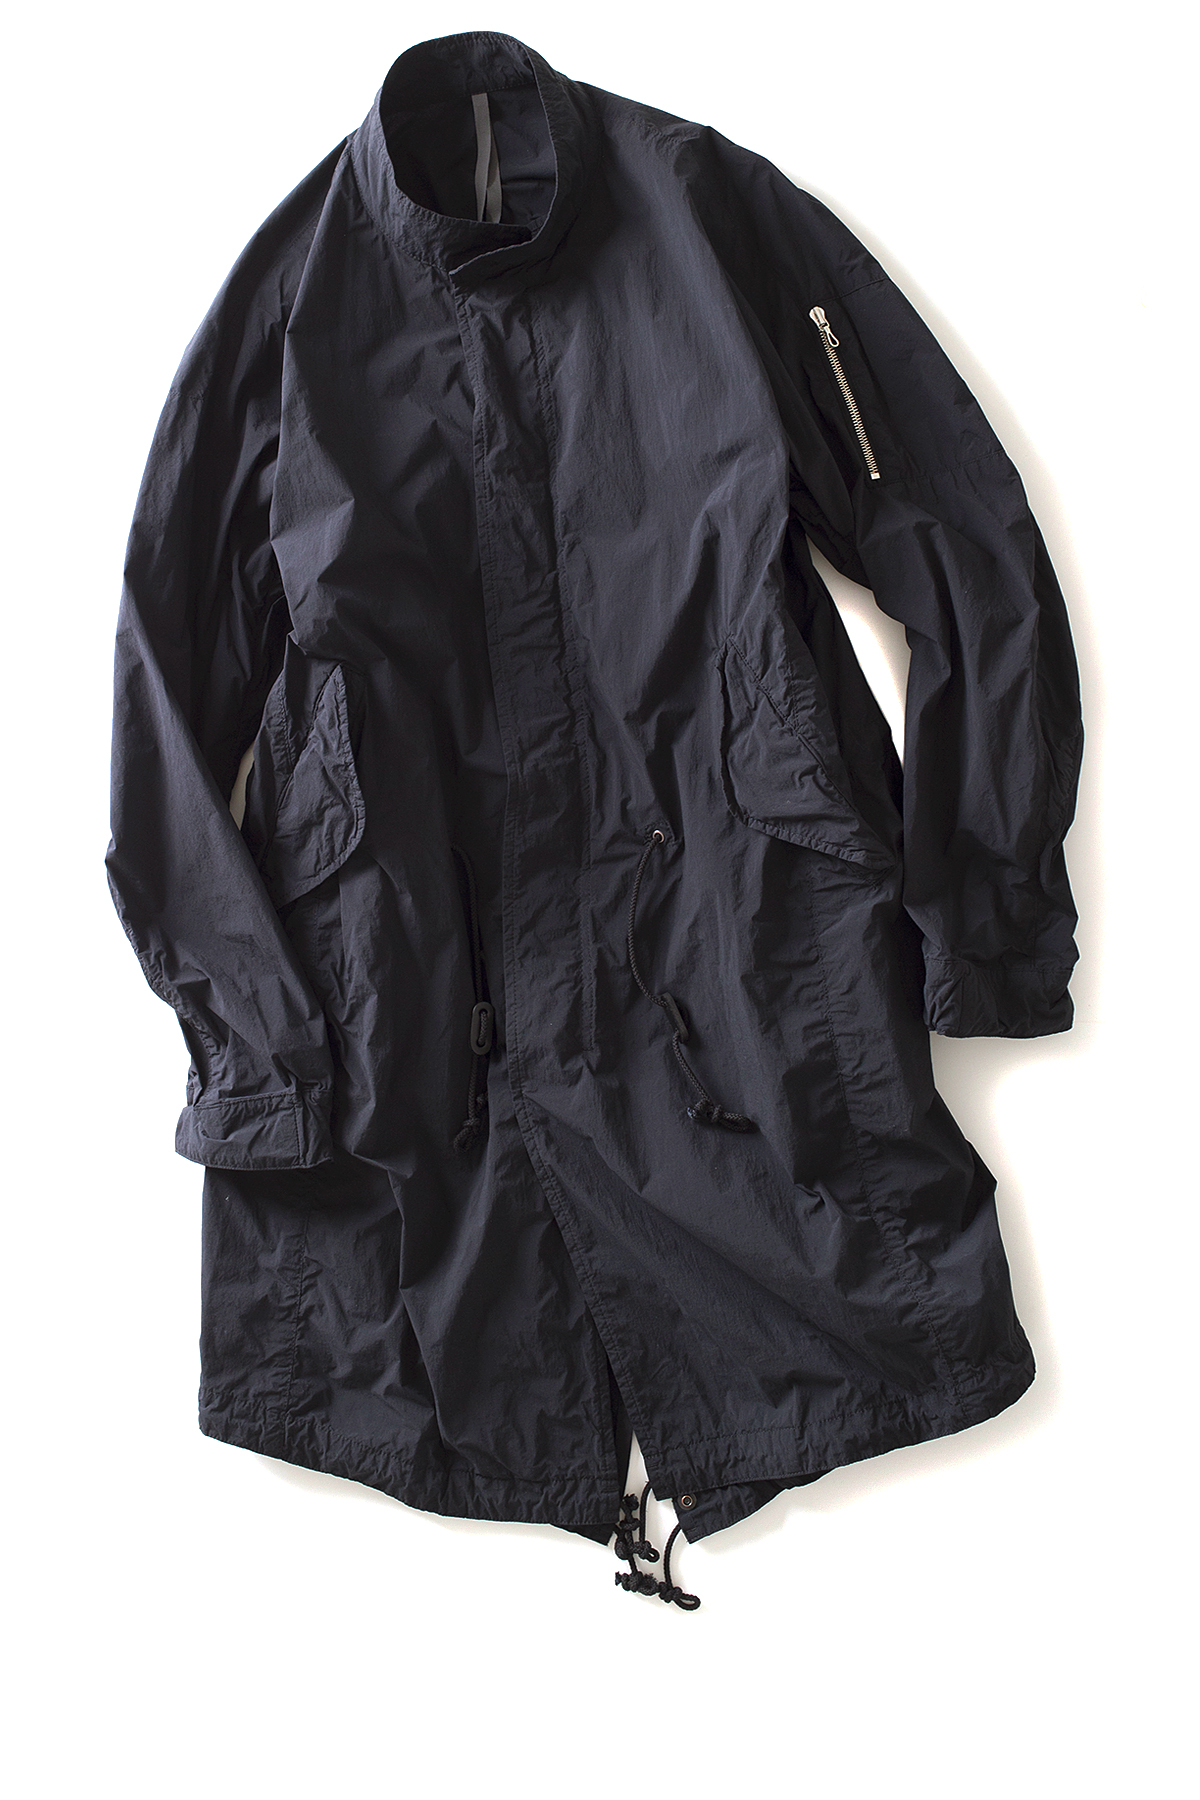 KAZUYUKI KUMAGAI / ATTACHMENT : KC71-018 (Black)